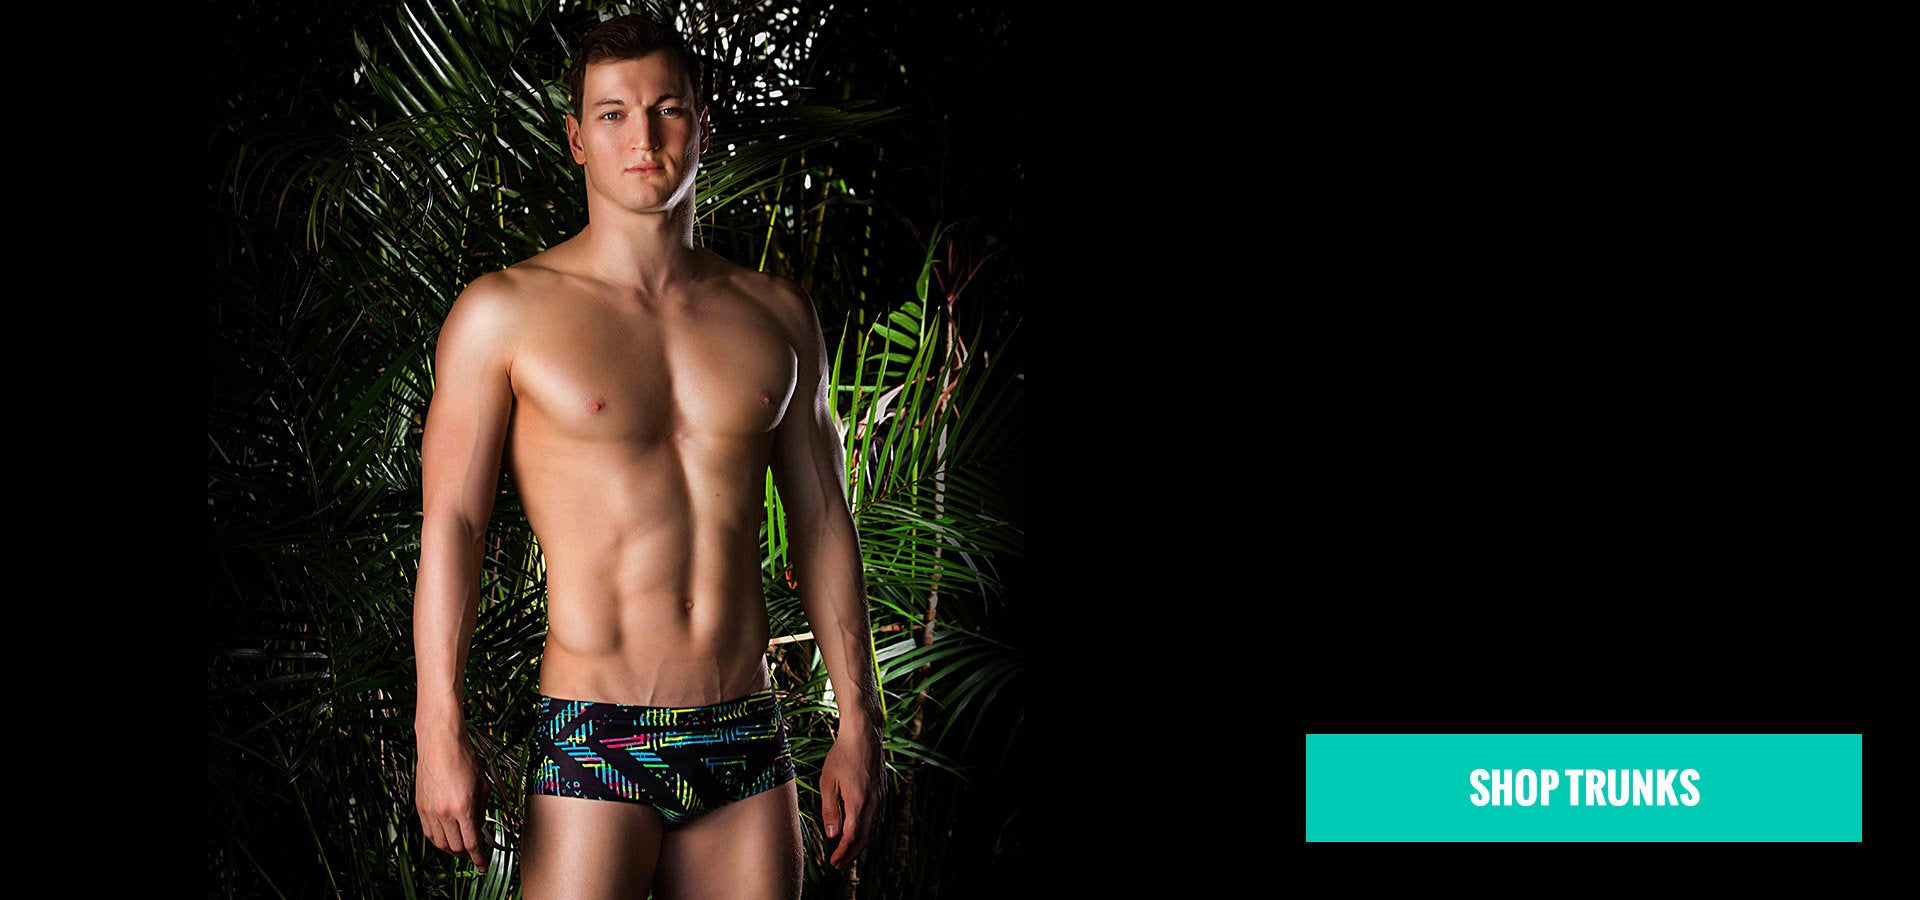 zealous swimwear // training swimwear // chlorine resistant // Cheap Swimwear